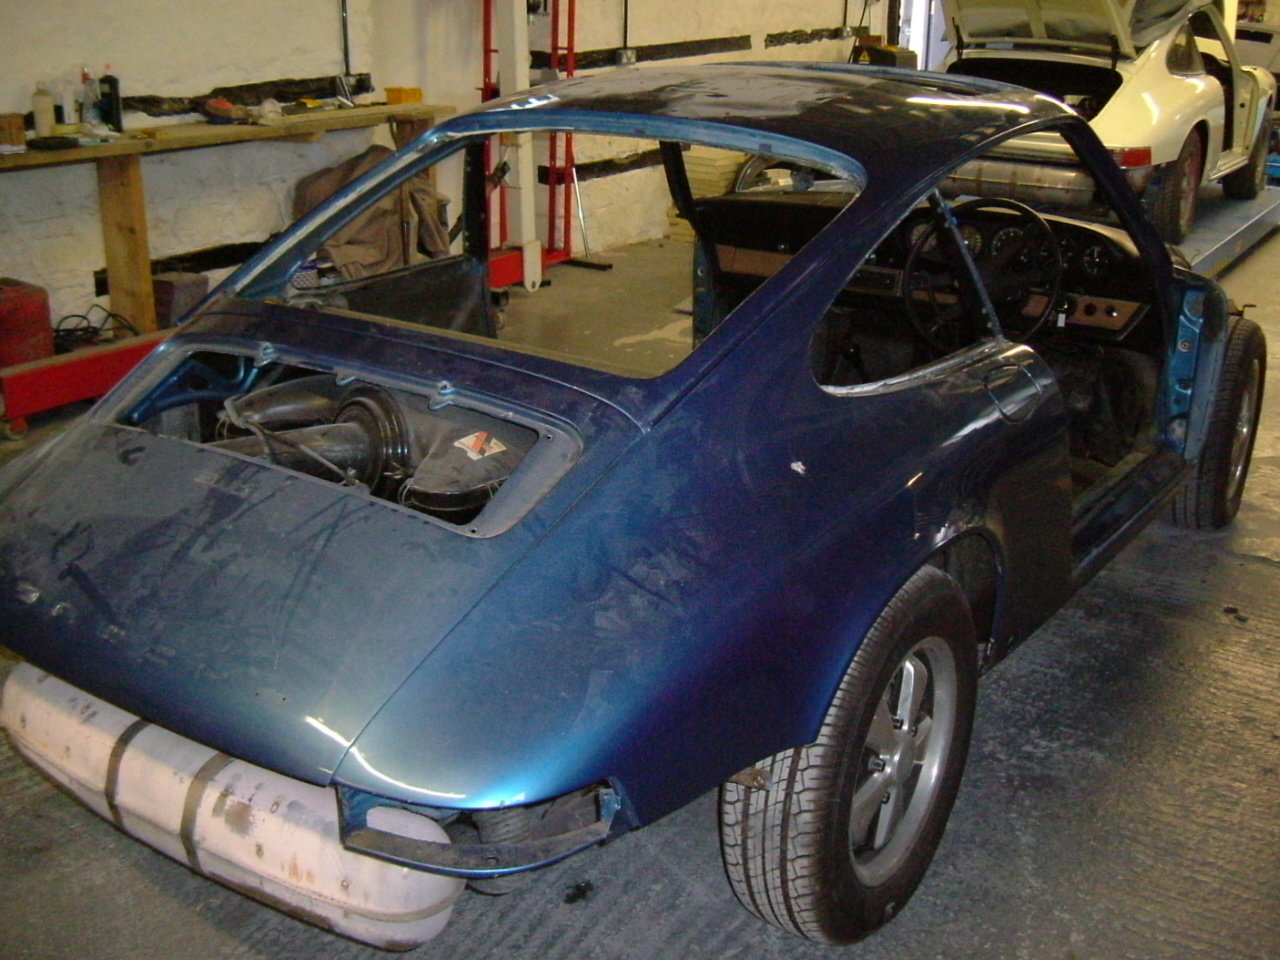 The Blue Pearl during restoration at Export 56 - 1972 Porsche 911T